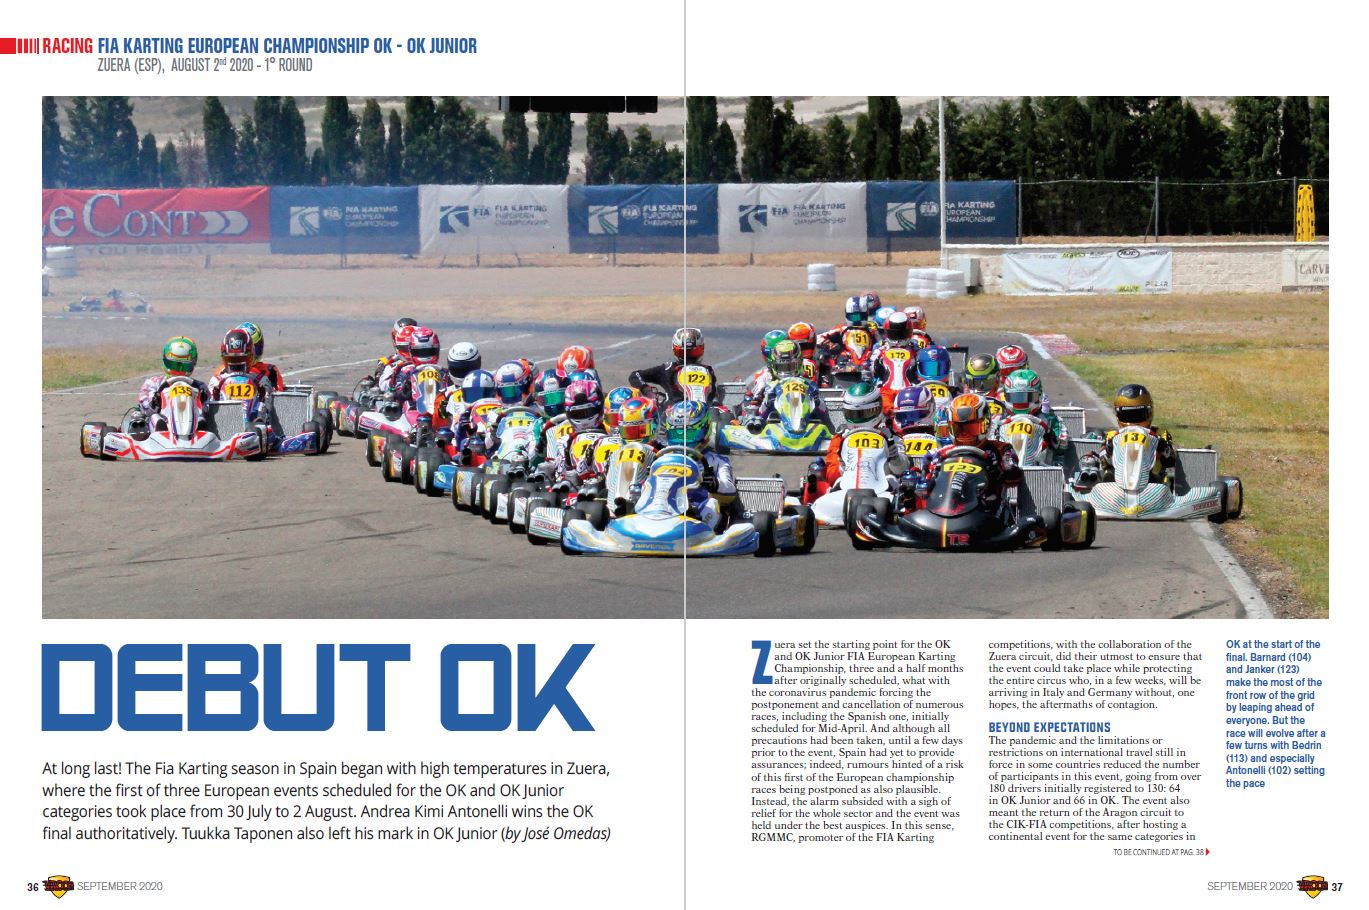 Racing - Fia Karting OK OKJ